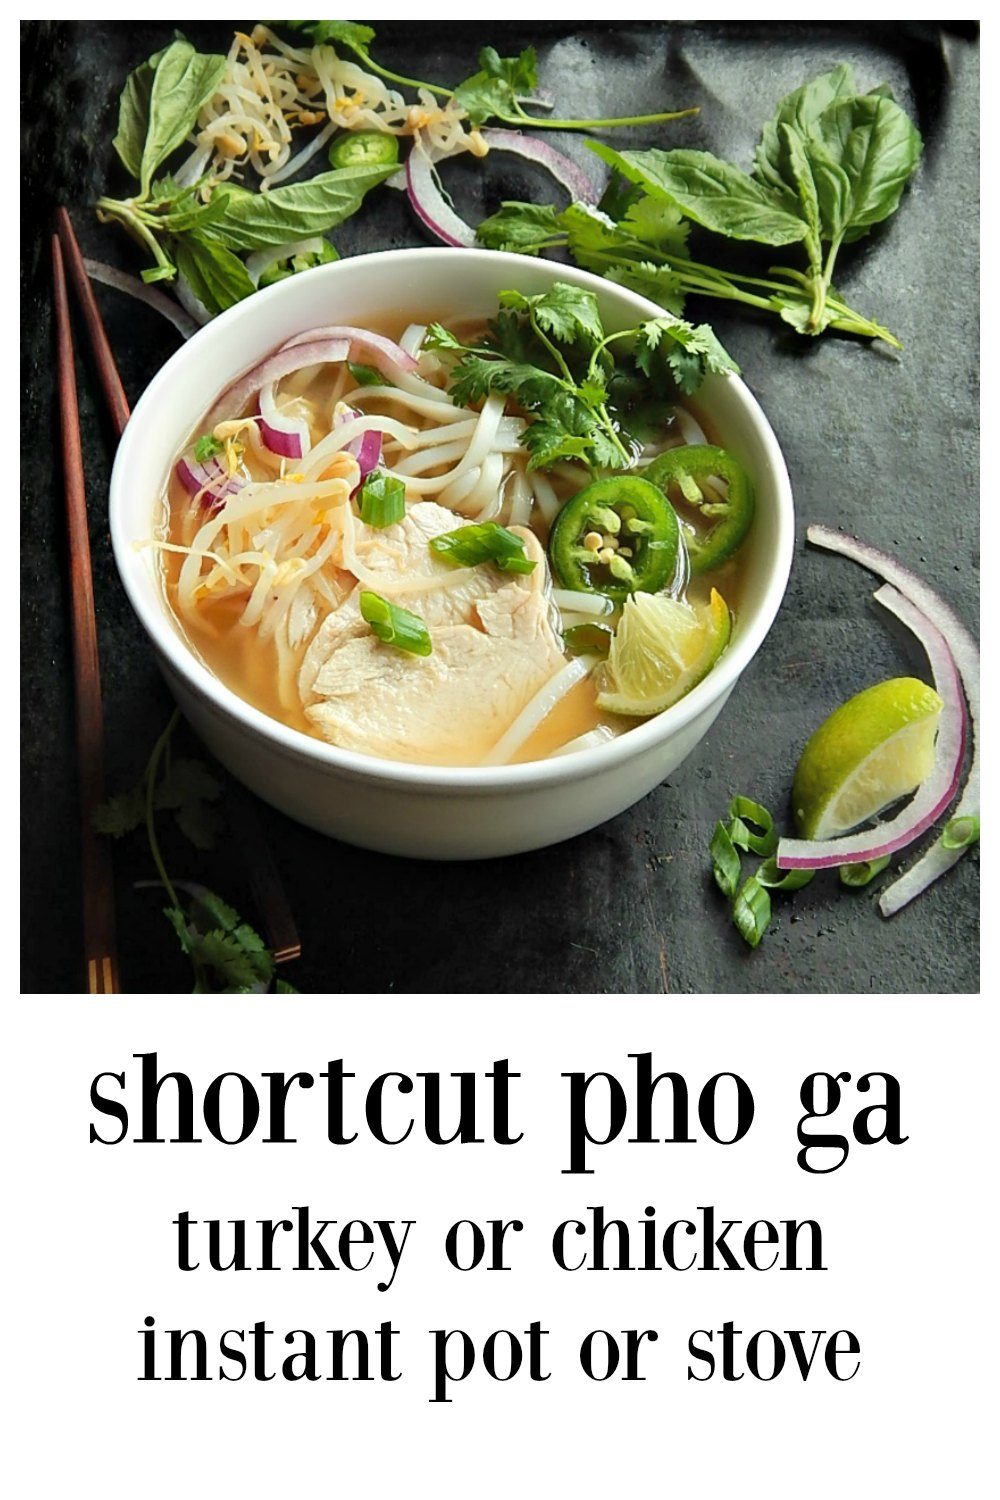 Shortcut Pho Ga Vietnamese Chicken Noodle Soup is fast & easy; Make it with chicken or with your leftover Thanksgiving Turkey! Instant Pot or Stovetop. #PhoGa #ShortcutPhoGa #PhoGaTay #VietnameseChickenSoup #SoupFromLeftoverTurkey #VietnameseChickenSoup #SoupFromLeftoverTurkey